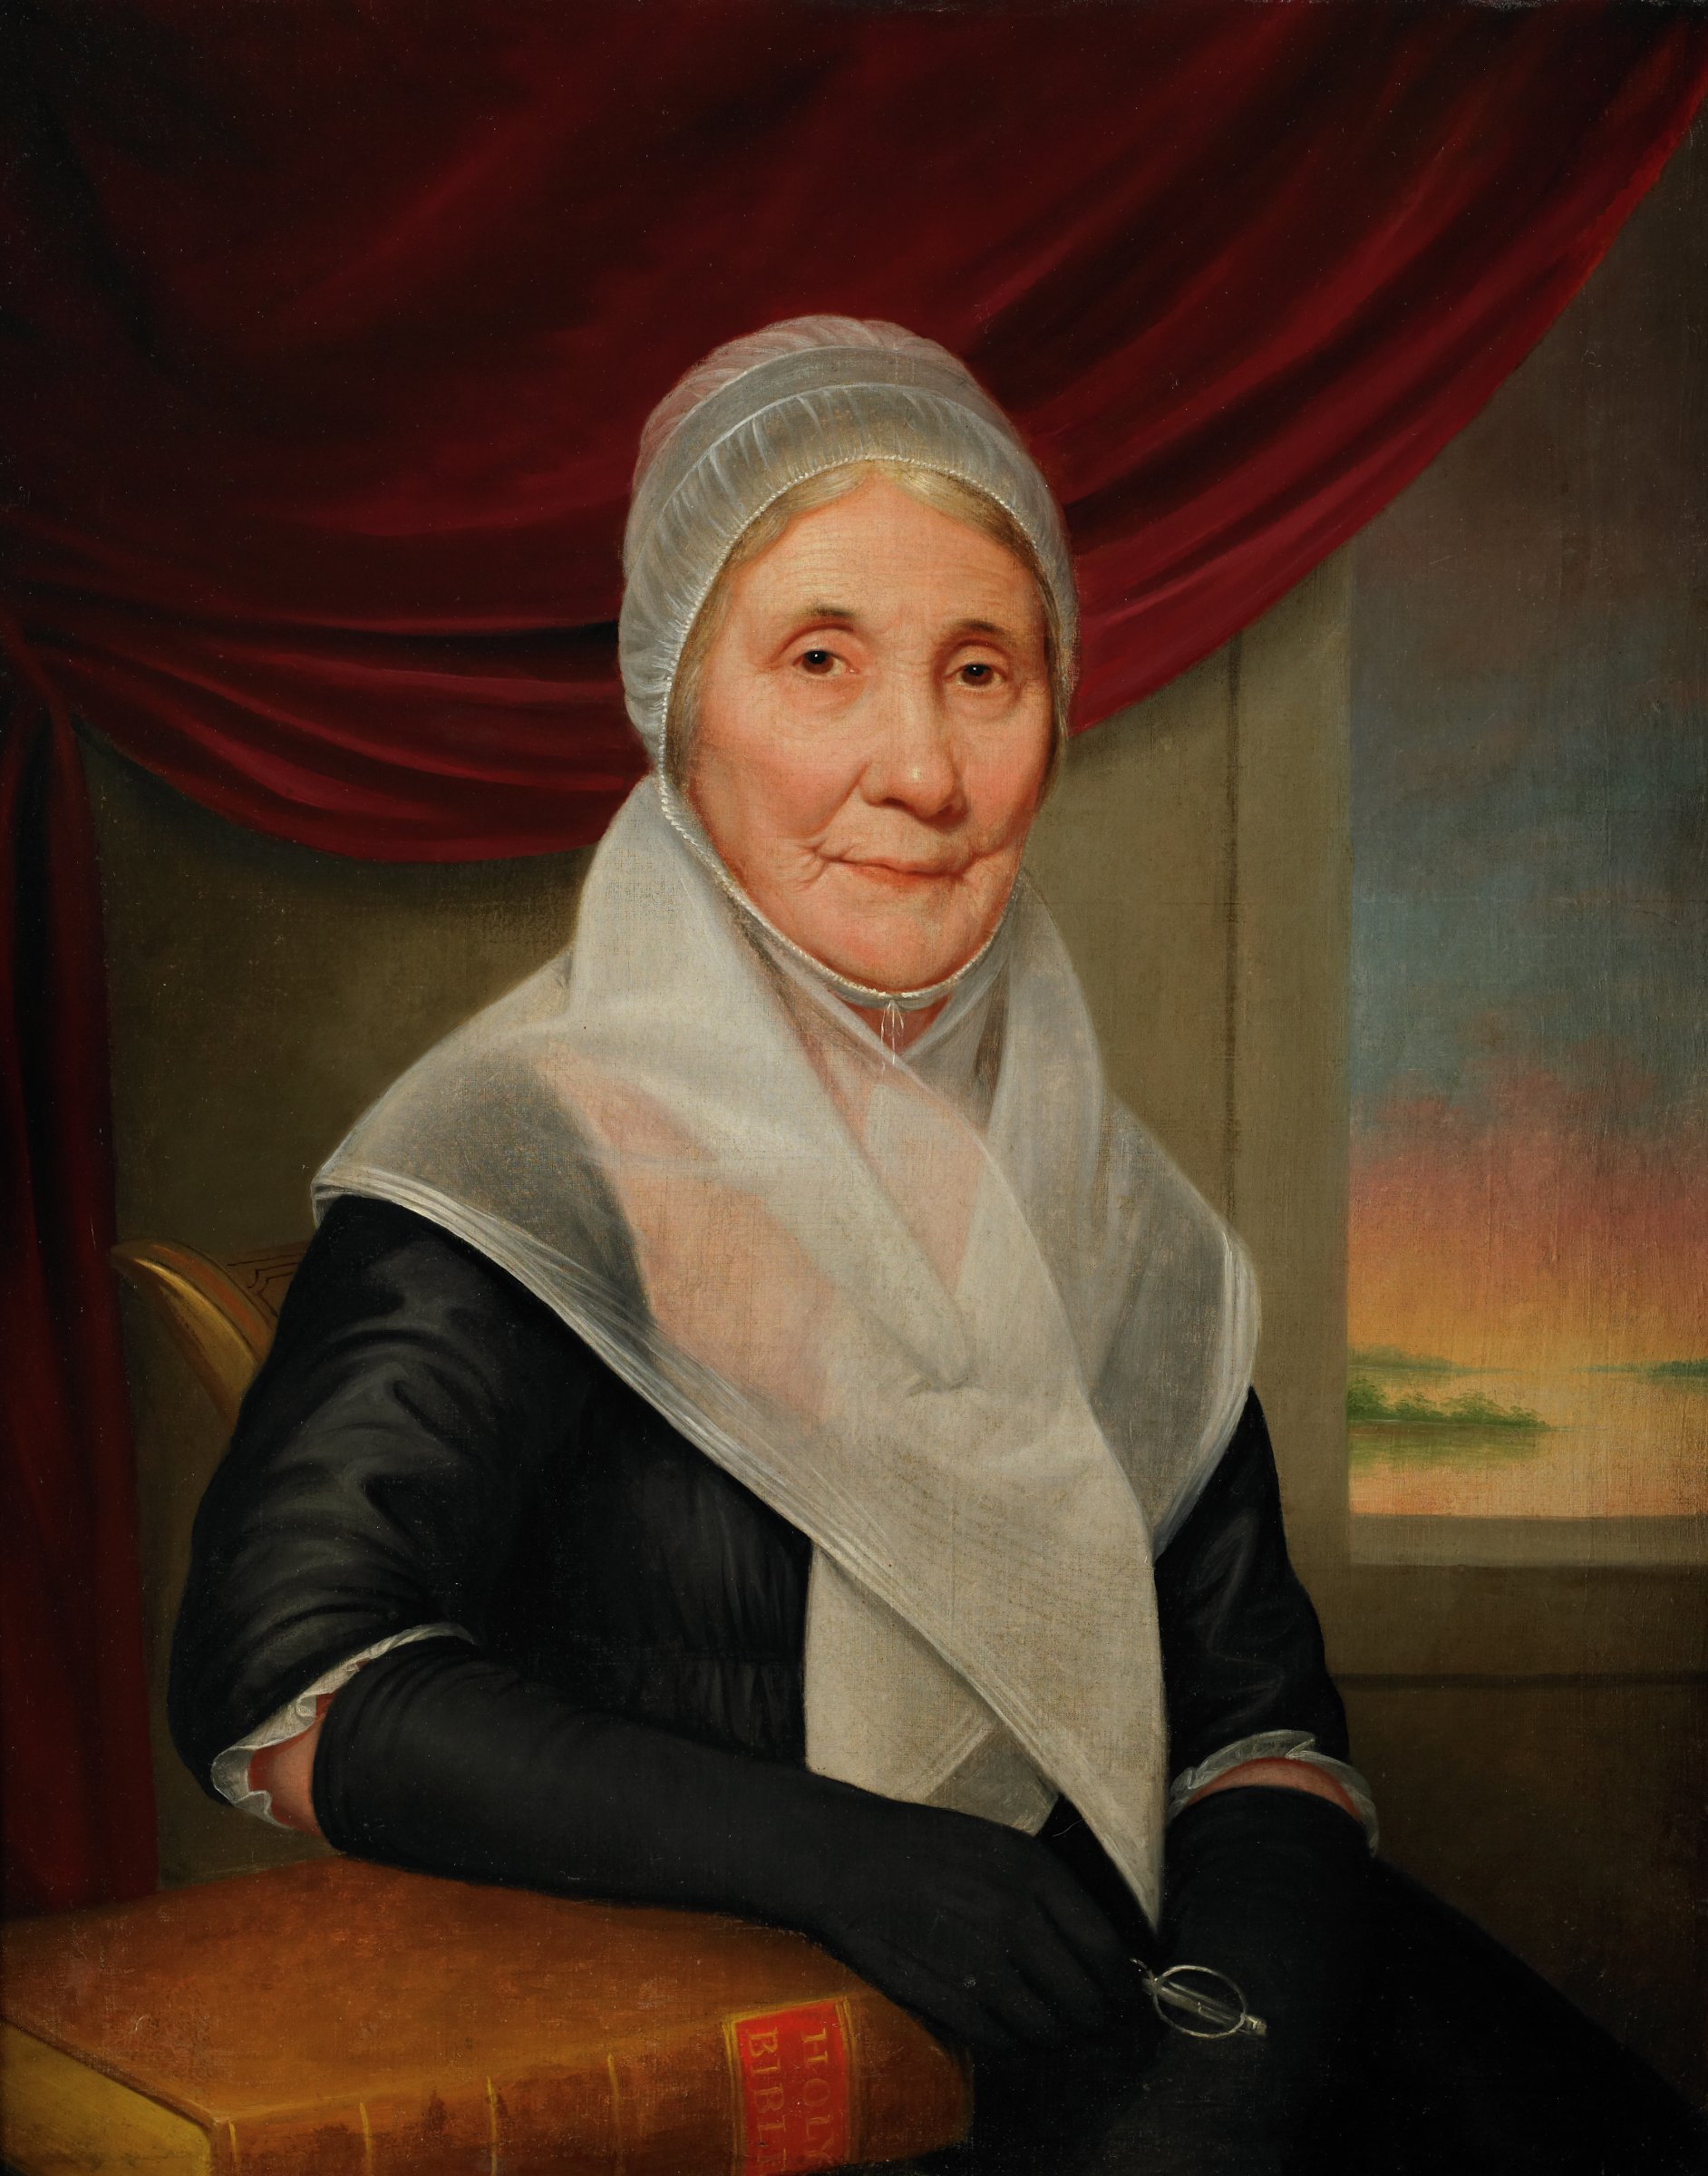 Three-quarter-length portrait of an elderly woman seated in a painted chair (the chair's ear is visible at far left) before a wall with a red curtain drawn to reveal a window, at right, through which can be seen a sunset painted in peach pink hues. The woman—who gazes directly at the viewer—wears a black dress with white trimmed sleeves, full-length black gloves, and a diaphanous white linen cap and kerchief. Her right arm rests on a large family Bible. She hold holds a pair of spectacles in her right hand, suggesting that she has just been reading the Scripture.